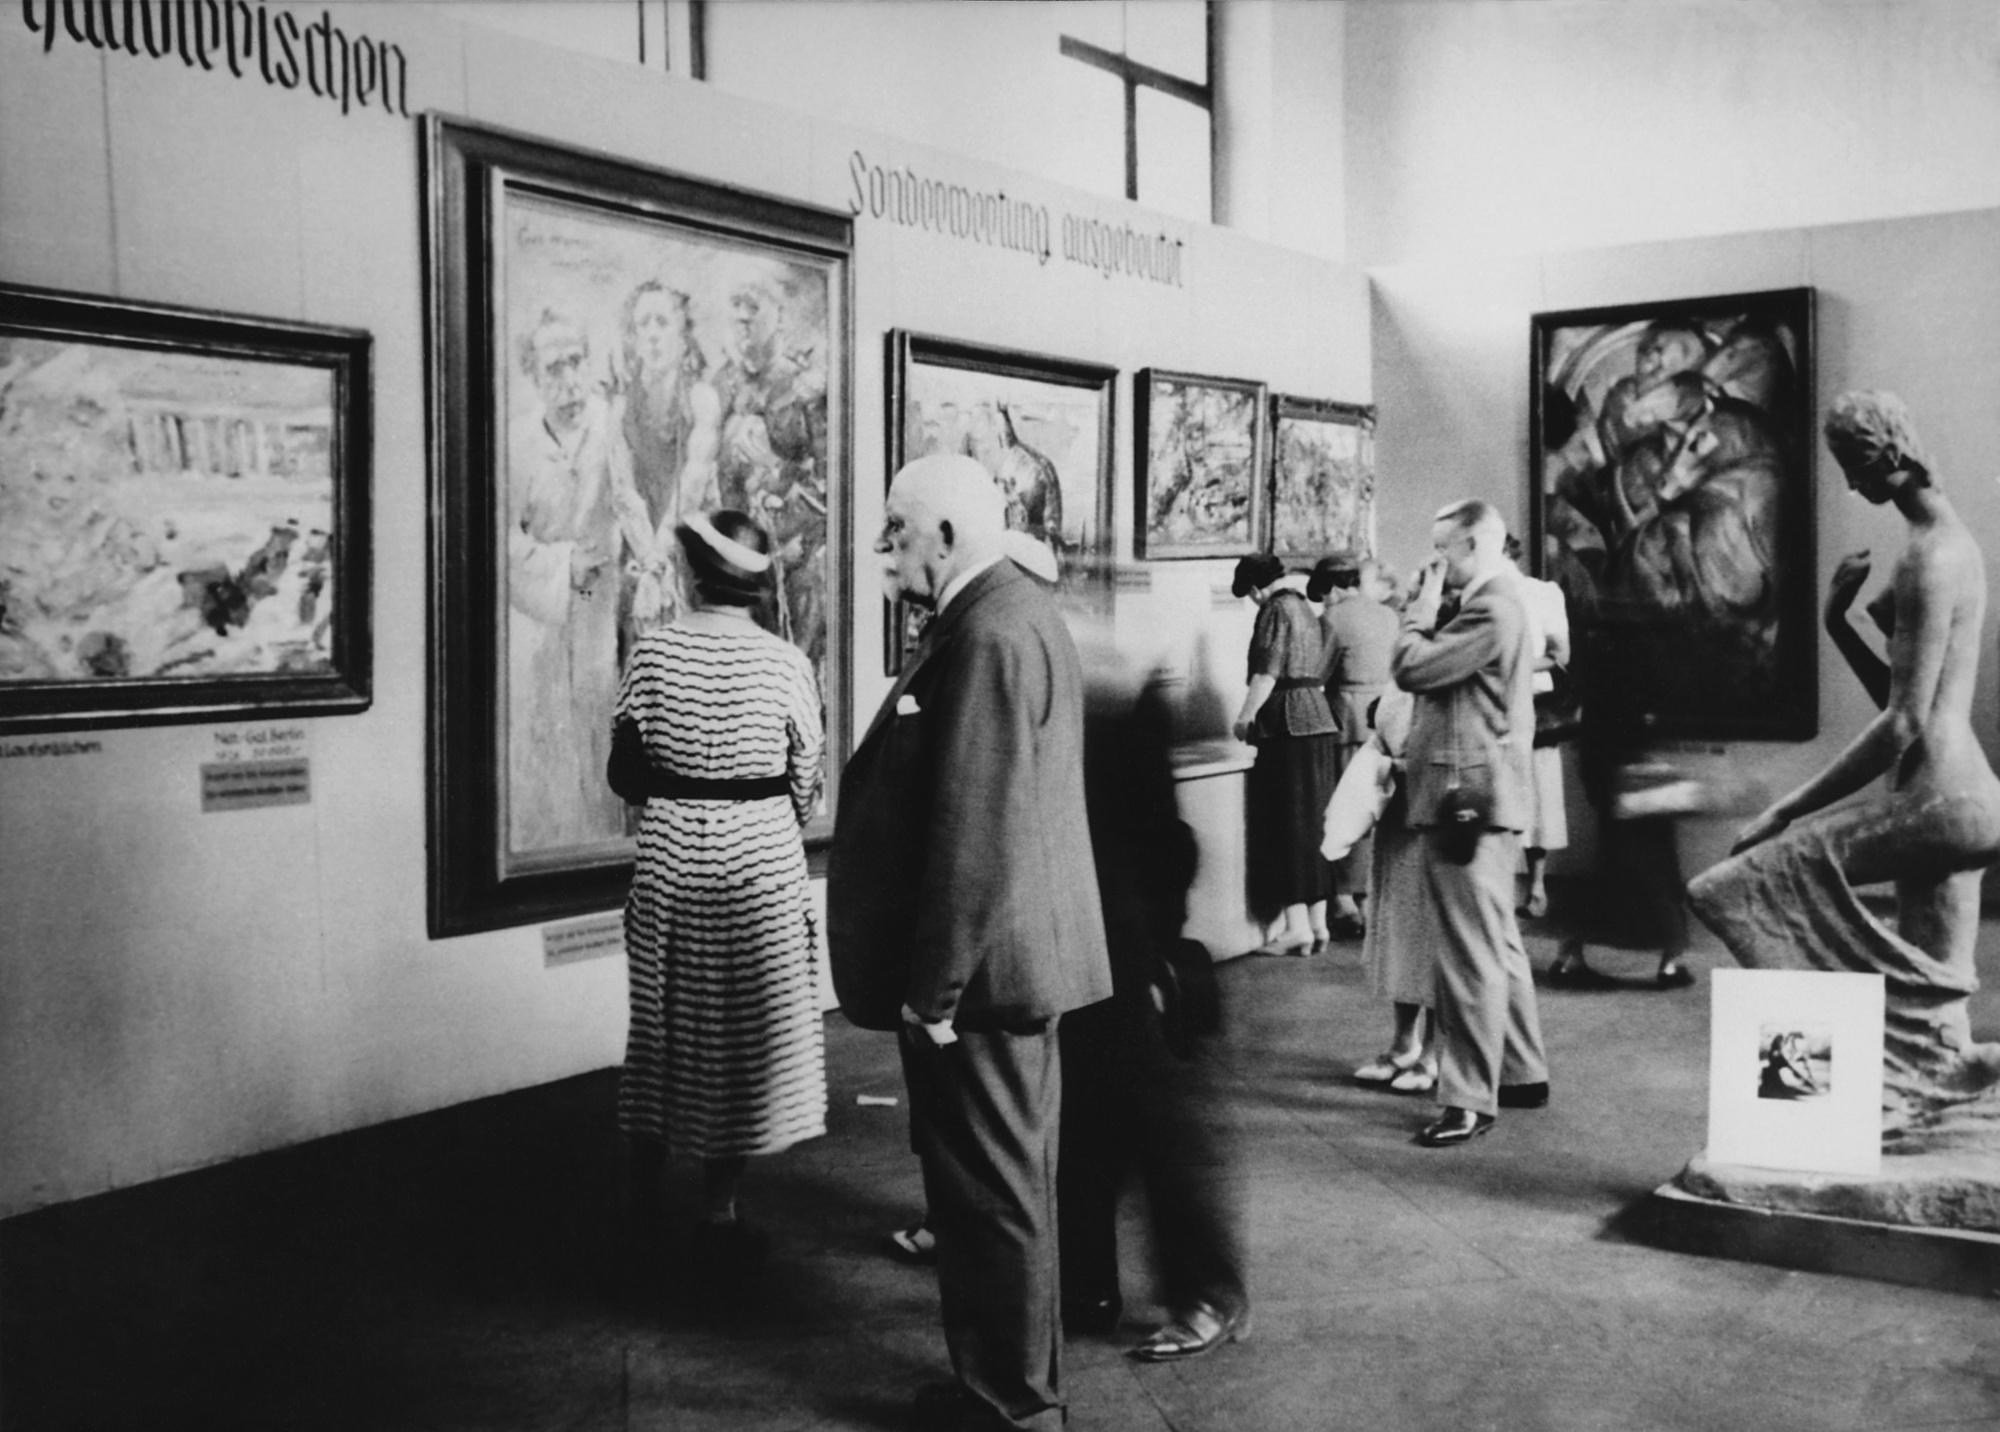 Visitors look at works in the Degenerate Art exhibition in Munich, which opened on July 19, 1937. Pictured are Lovis Corinth's Ecce homo (second from left) and Franz Marc's Tower of the Blue Horses (wall at right), next to Wilhelm Lehmbruck's sculpture Kneeling Woman.